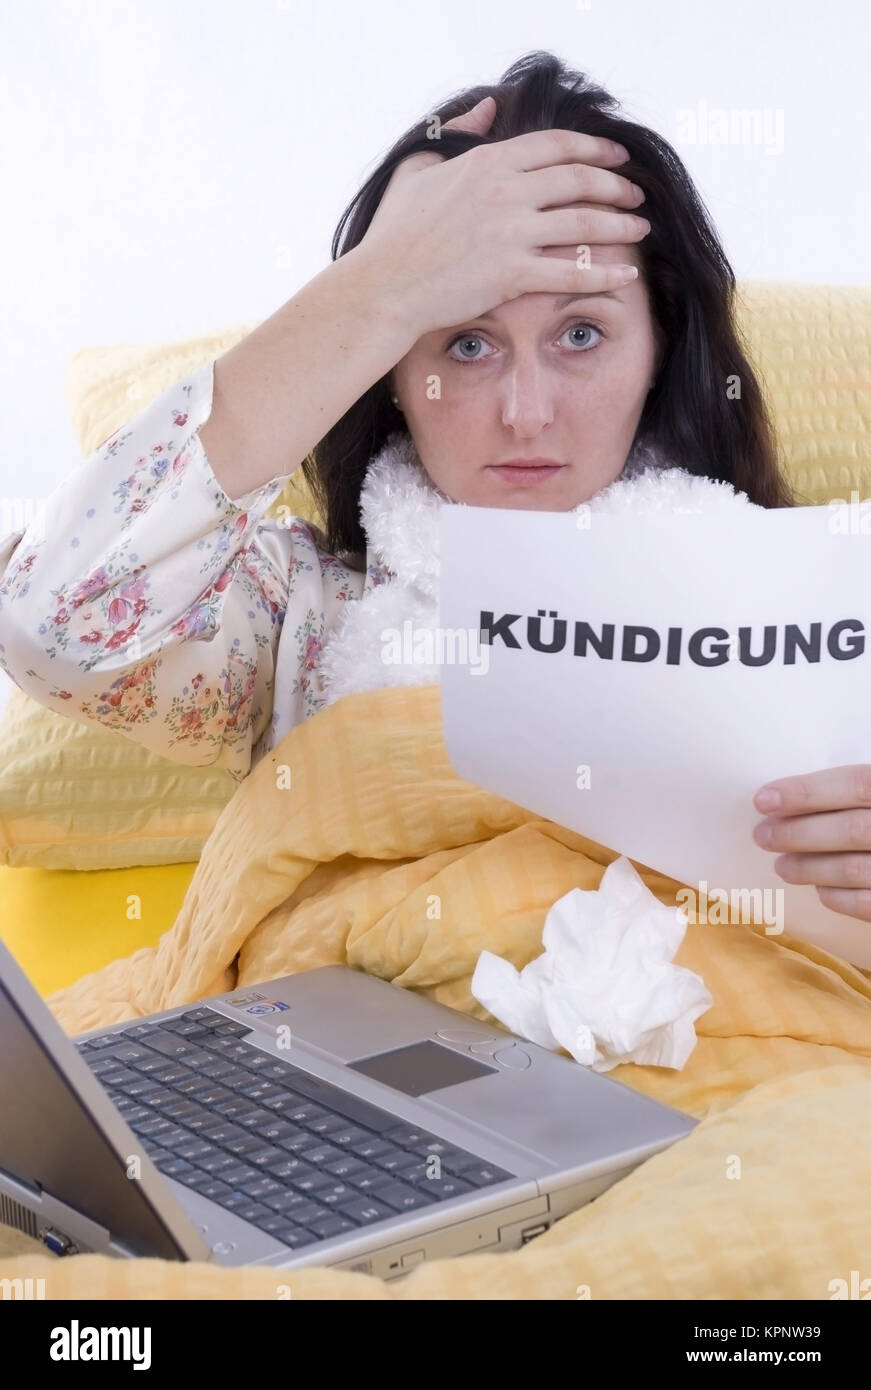 Model release , Kranke Frau im Bett mit Kuendigung in der Hand - sick woman in bed with letter of cancellation in - Stock Image